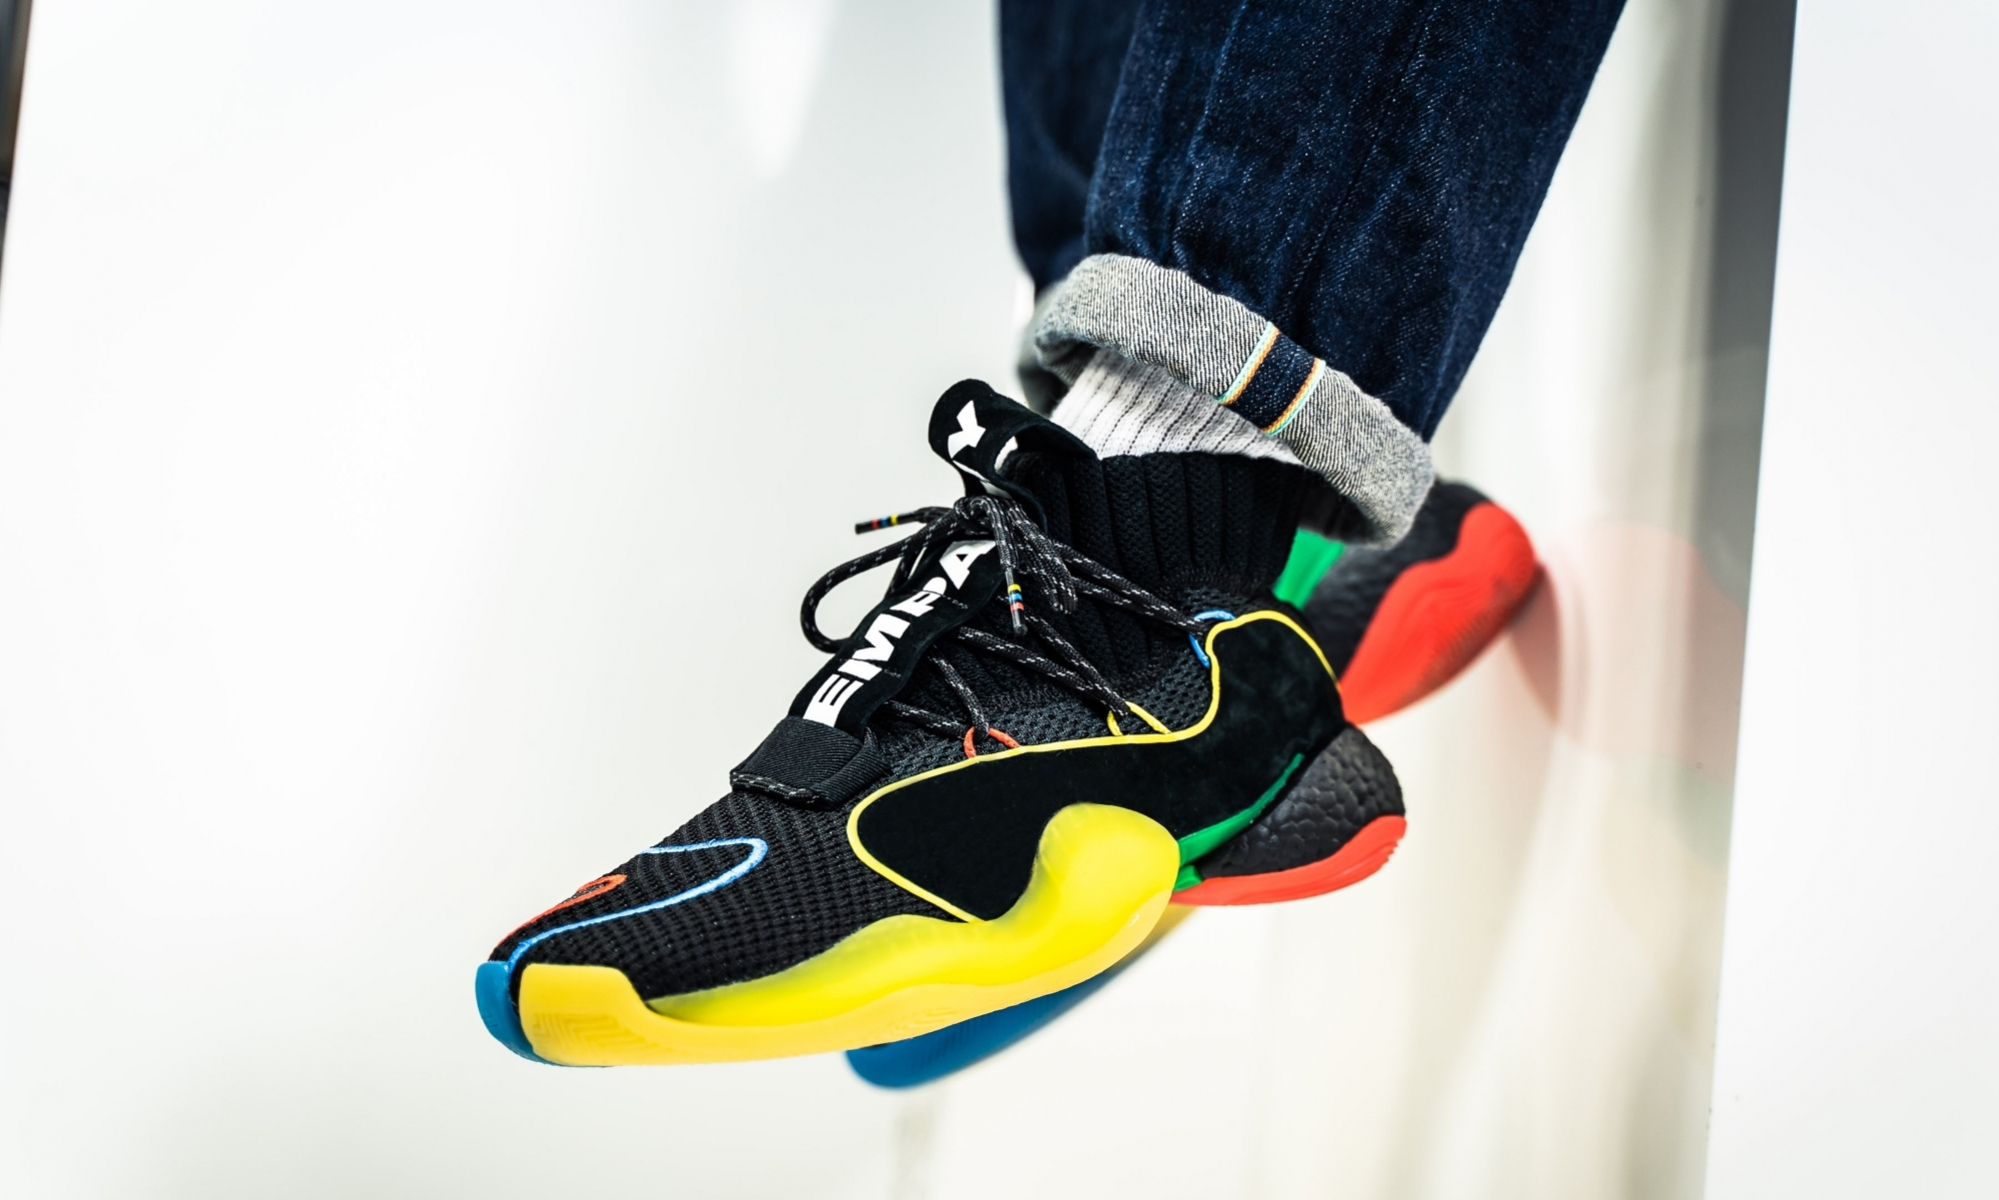 newest e6006 a7506 PHARRELL X ADIDAS CRAZY BYW LVL $124.50 | Sneaker Steal